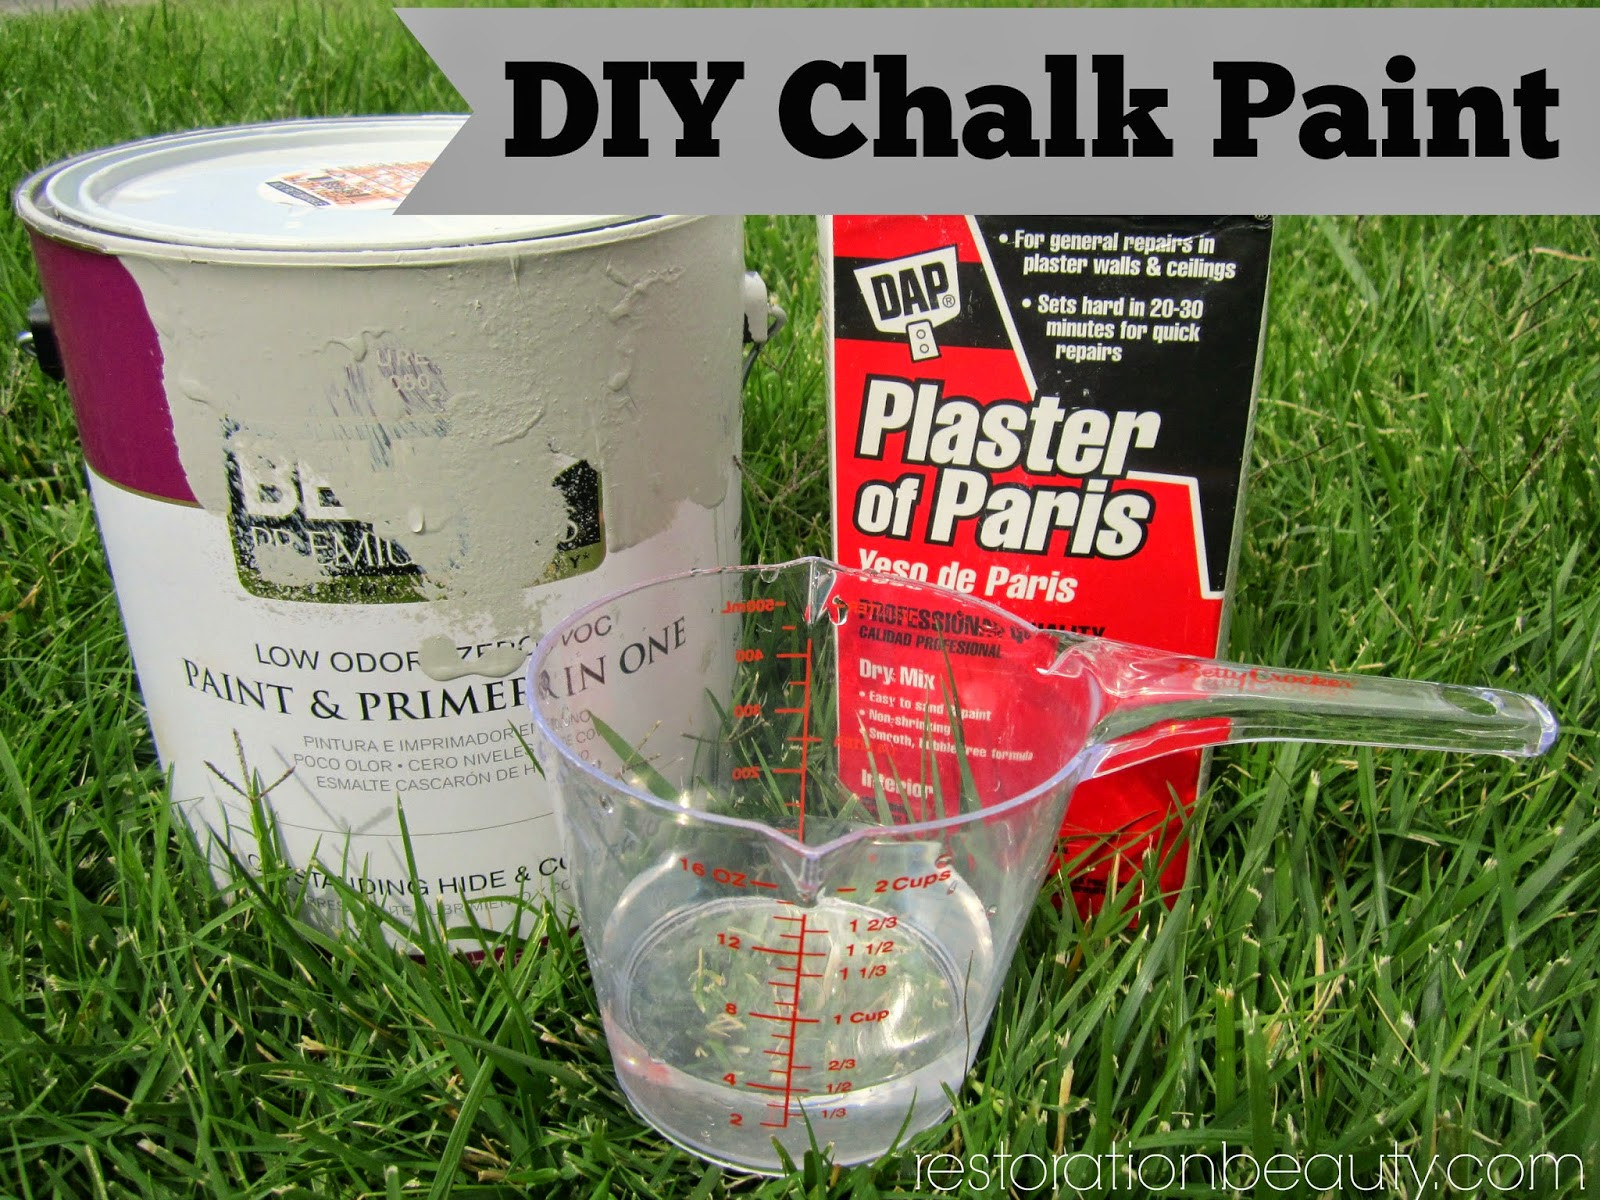 Best ideas about DIY Chalk Paint Plaster Of Paris . Save or Pin Restoration Beauty End Table Makeover Using DIY Chalk Paint Now.